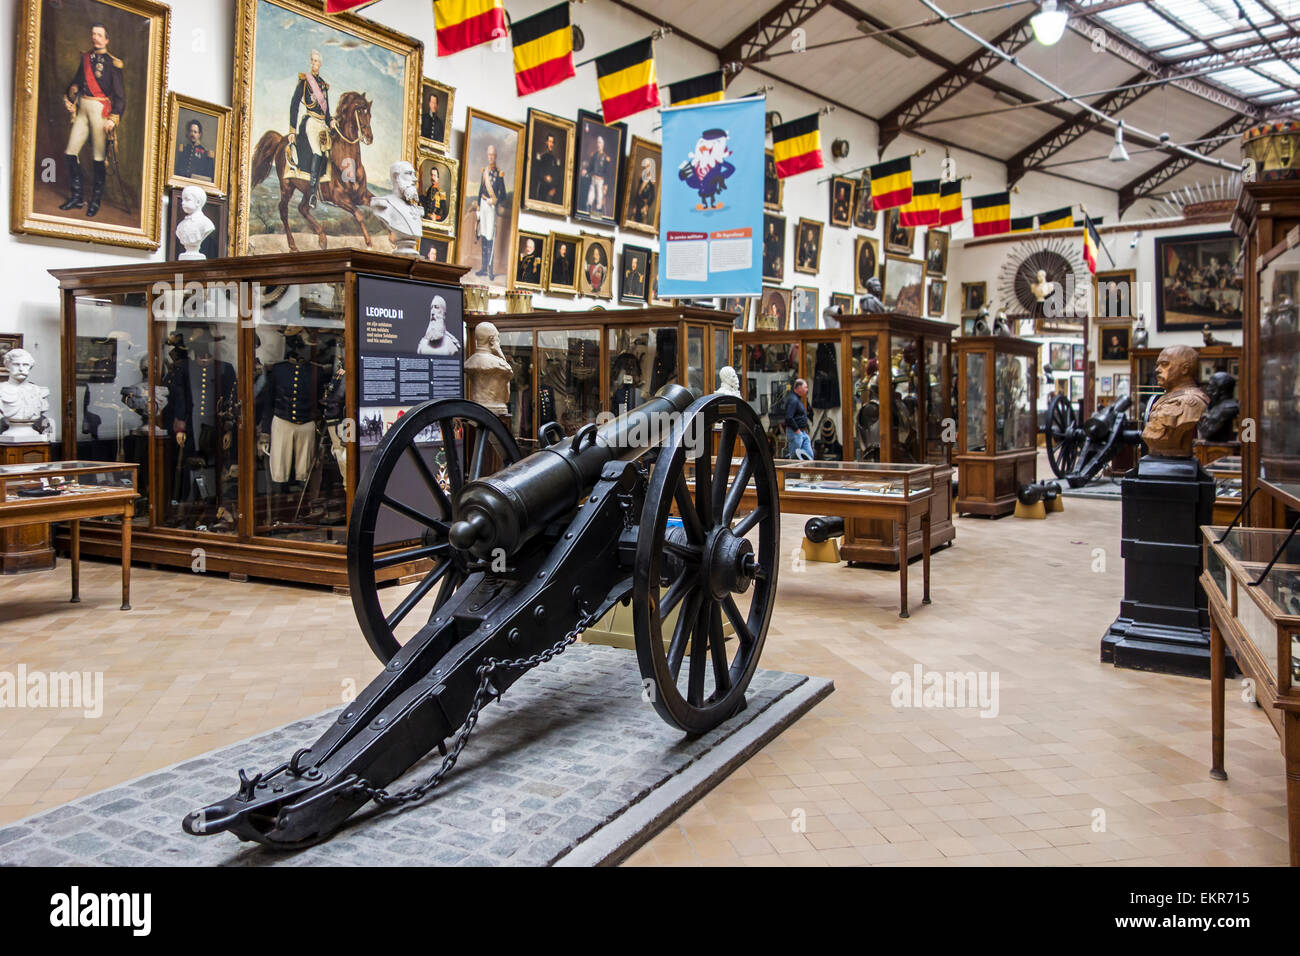 19th century cannons, weapons and uniforms at the Royal Museum of the Armed Forces and Military History in Brussels, - Stock Image